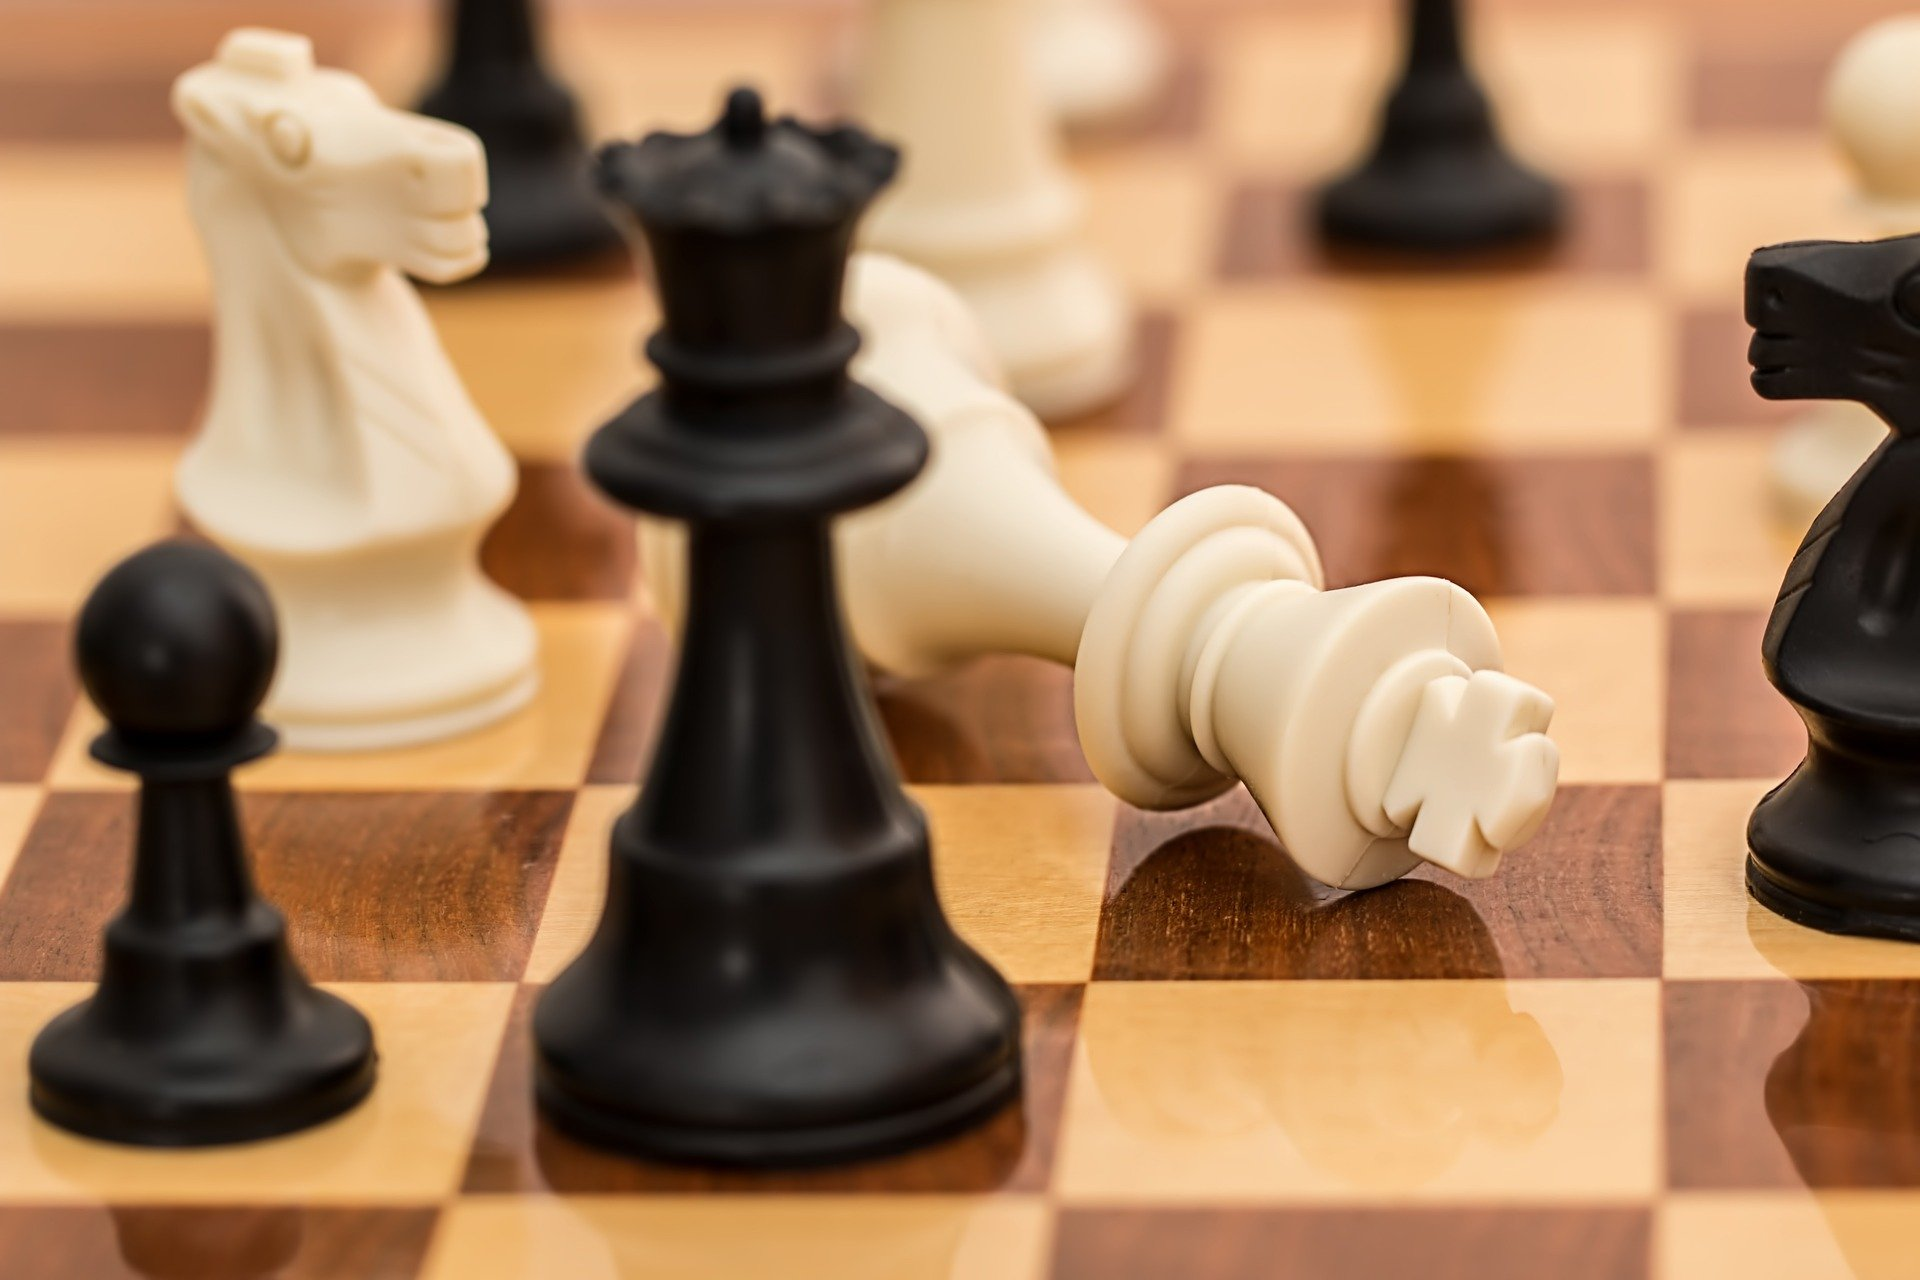 Pictured - A chess board game   Source: Pixabay